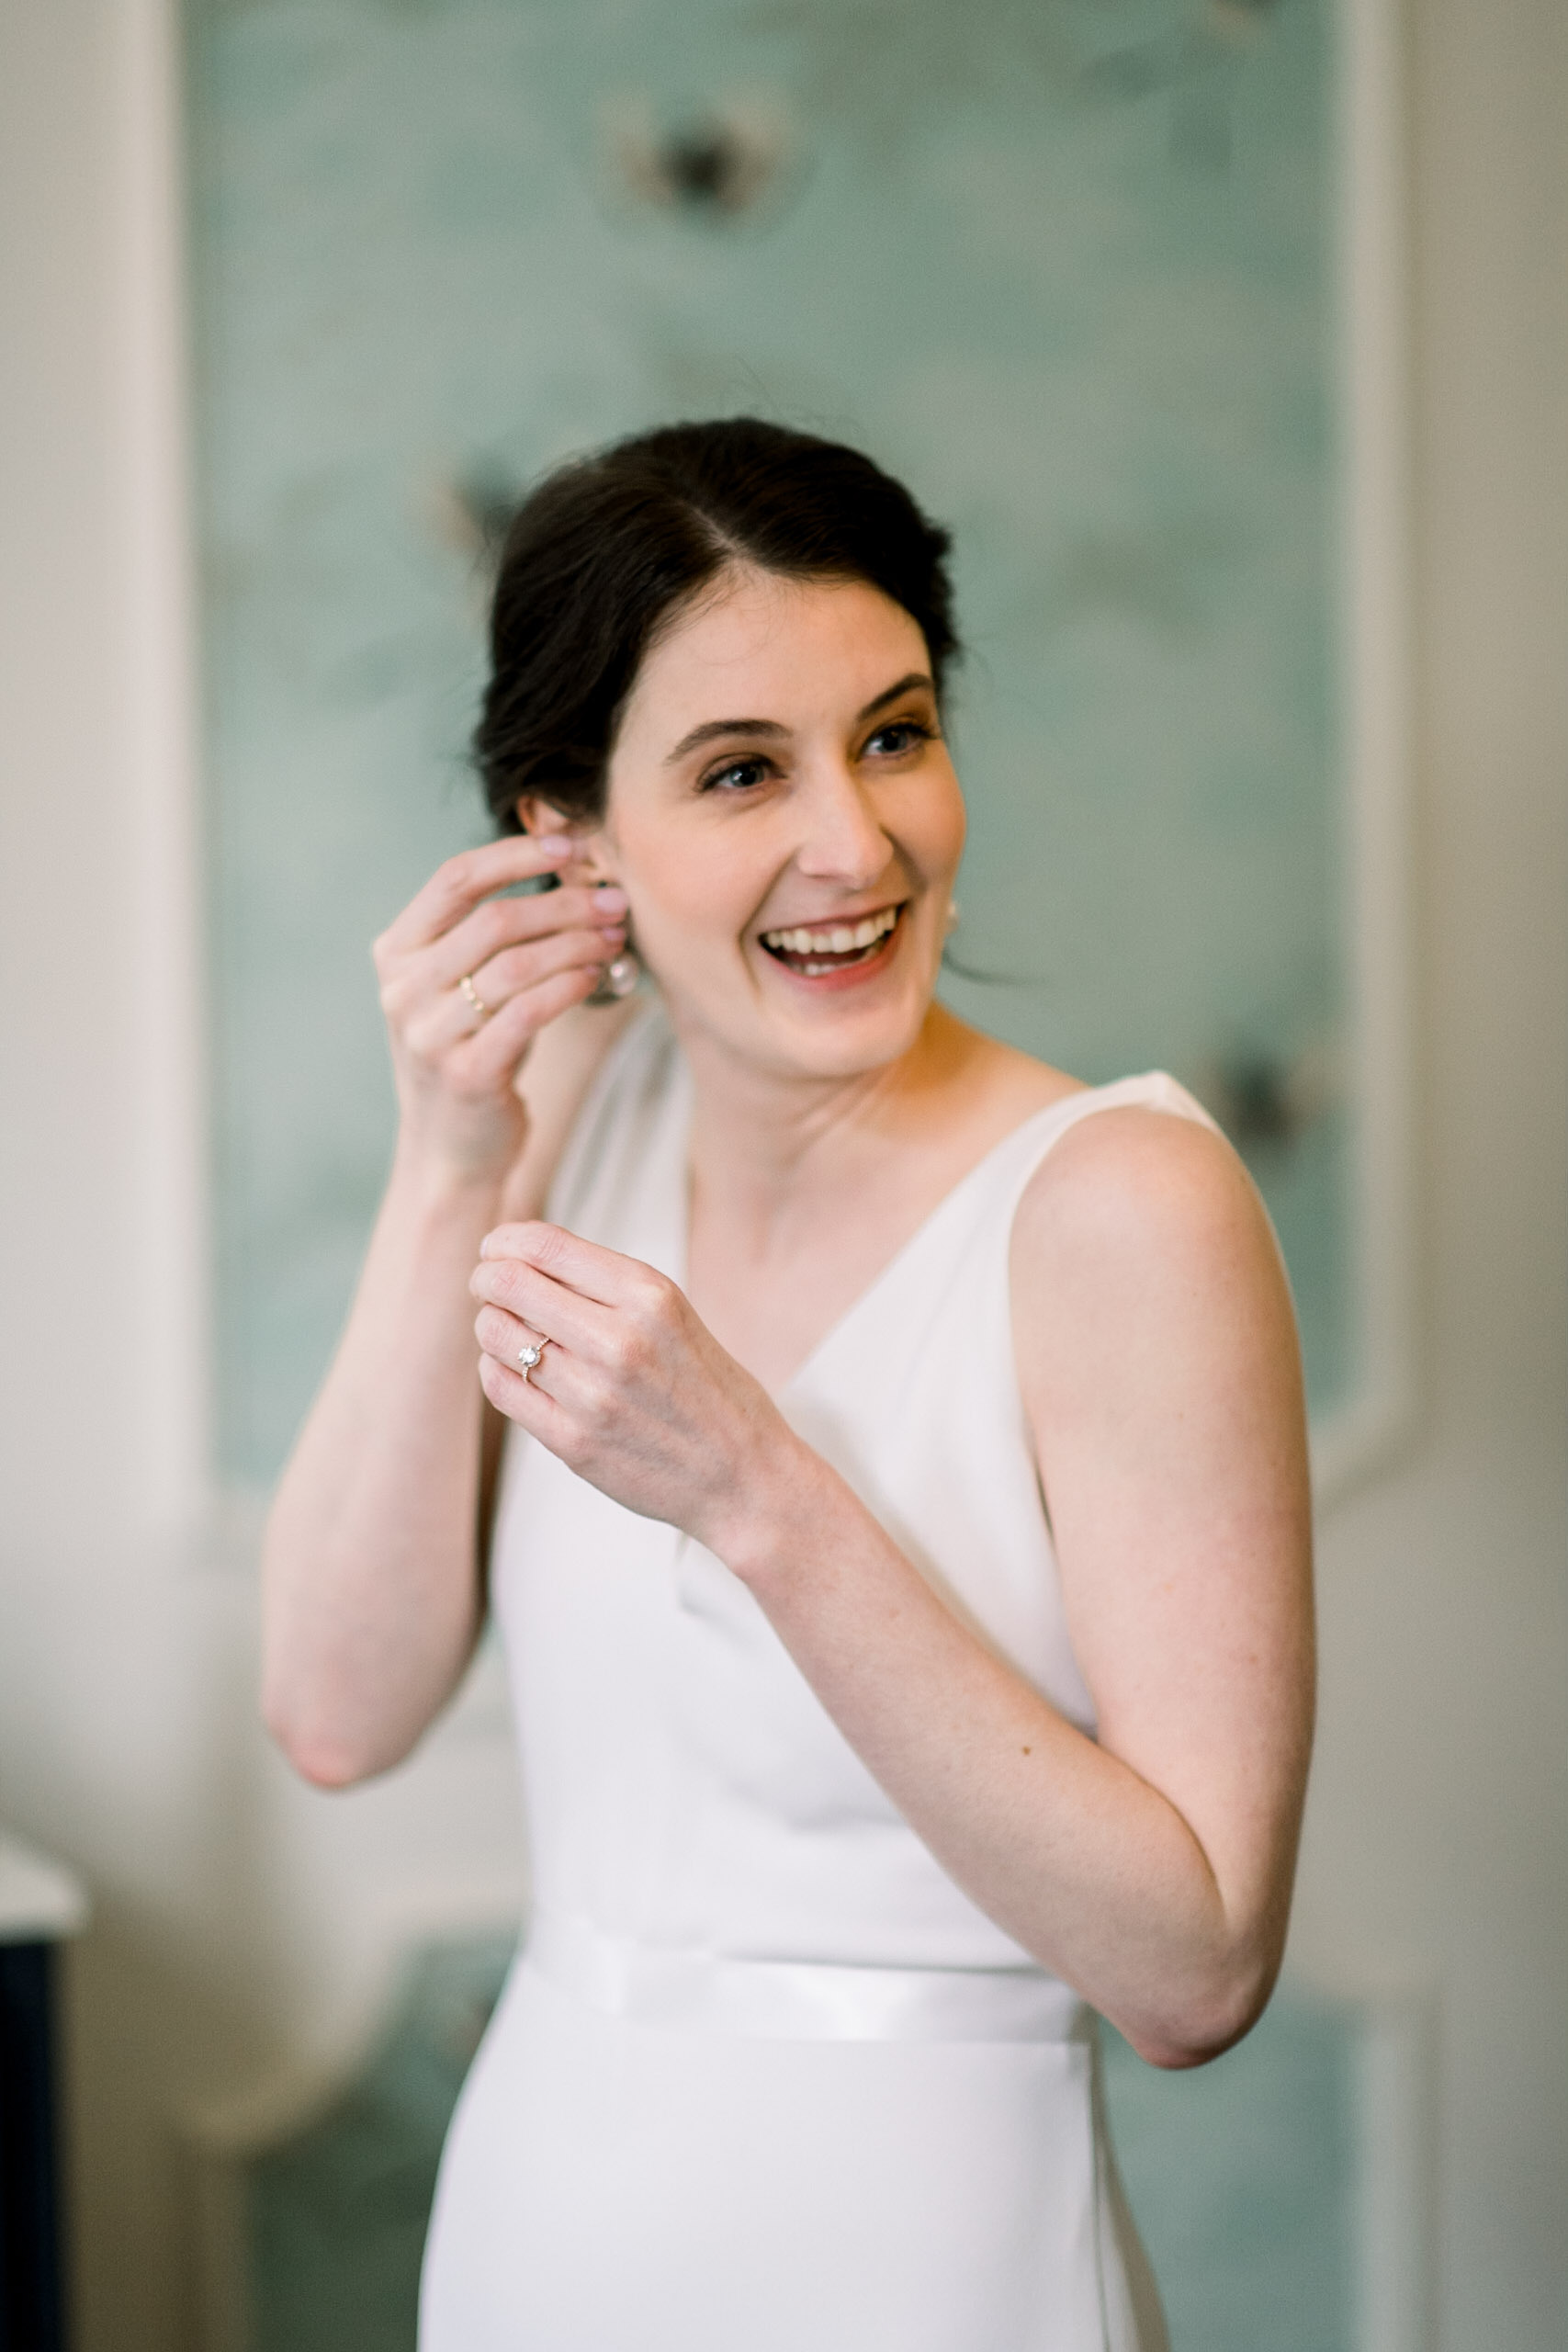 Bride getting ready for Pittsburgh wedding at Hotel Monaco planned by Exhale Events. Find more modern wedding ideas at exhale-events.com!